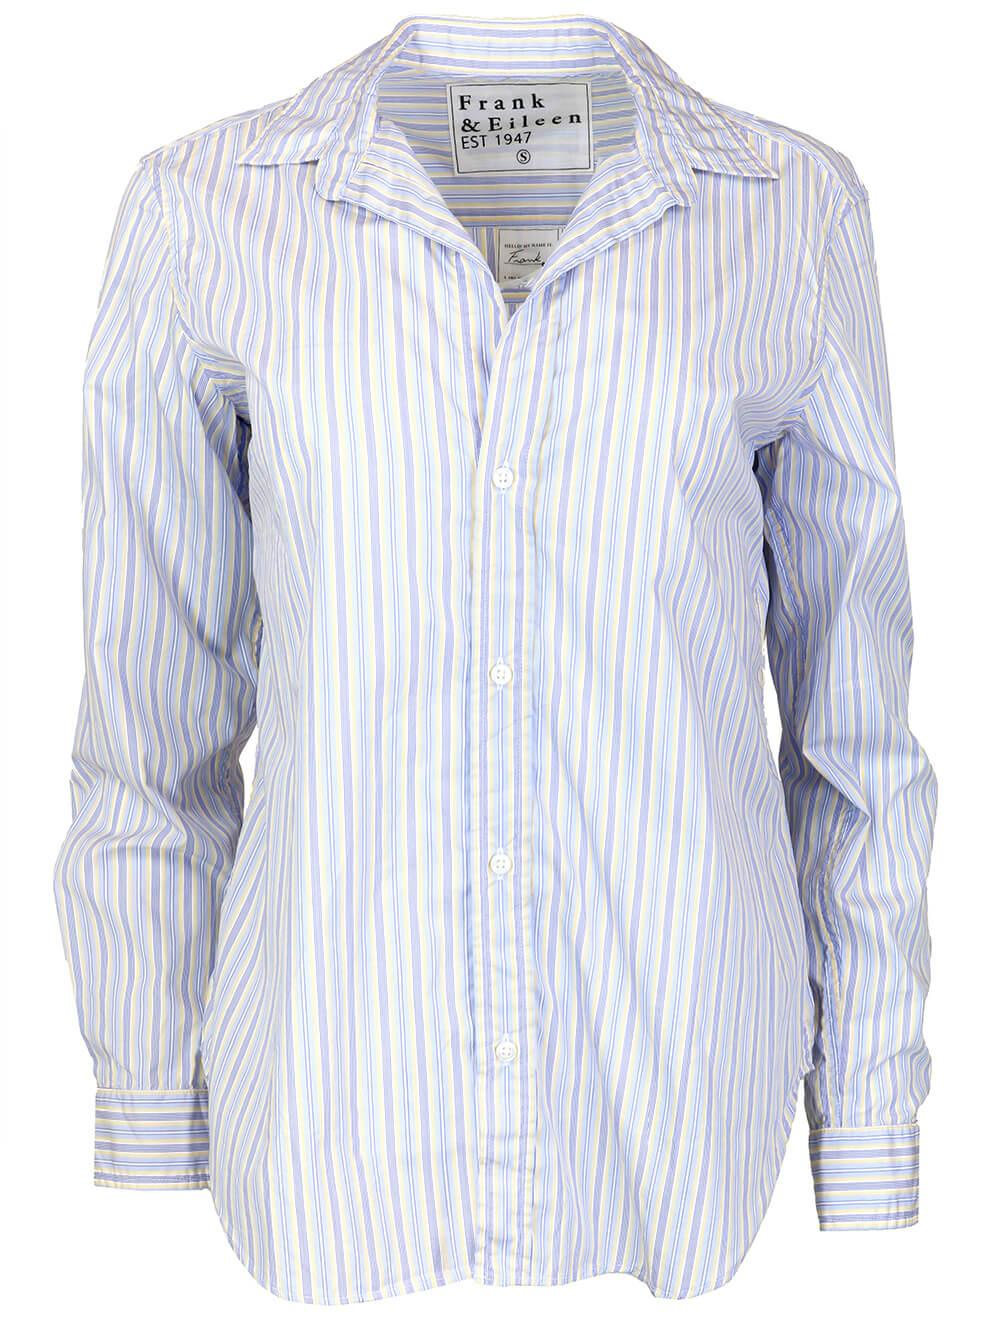 Frank Striped Button Up Item # FRANK-YBST